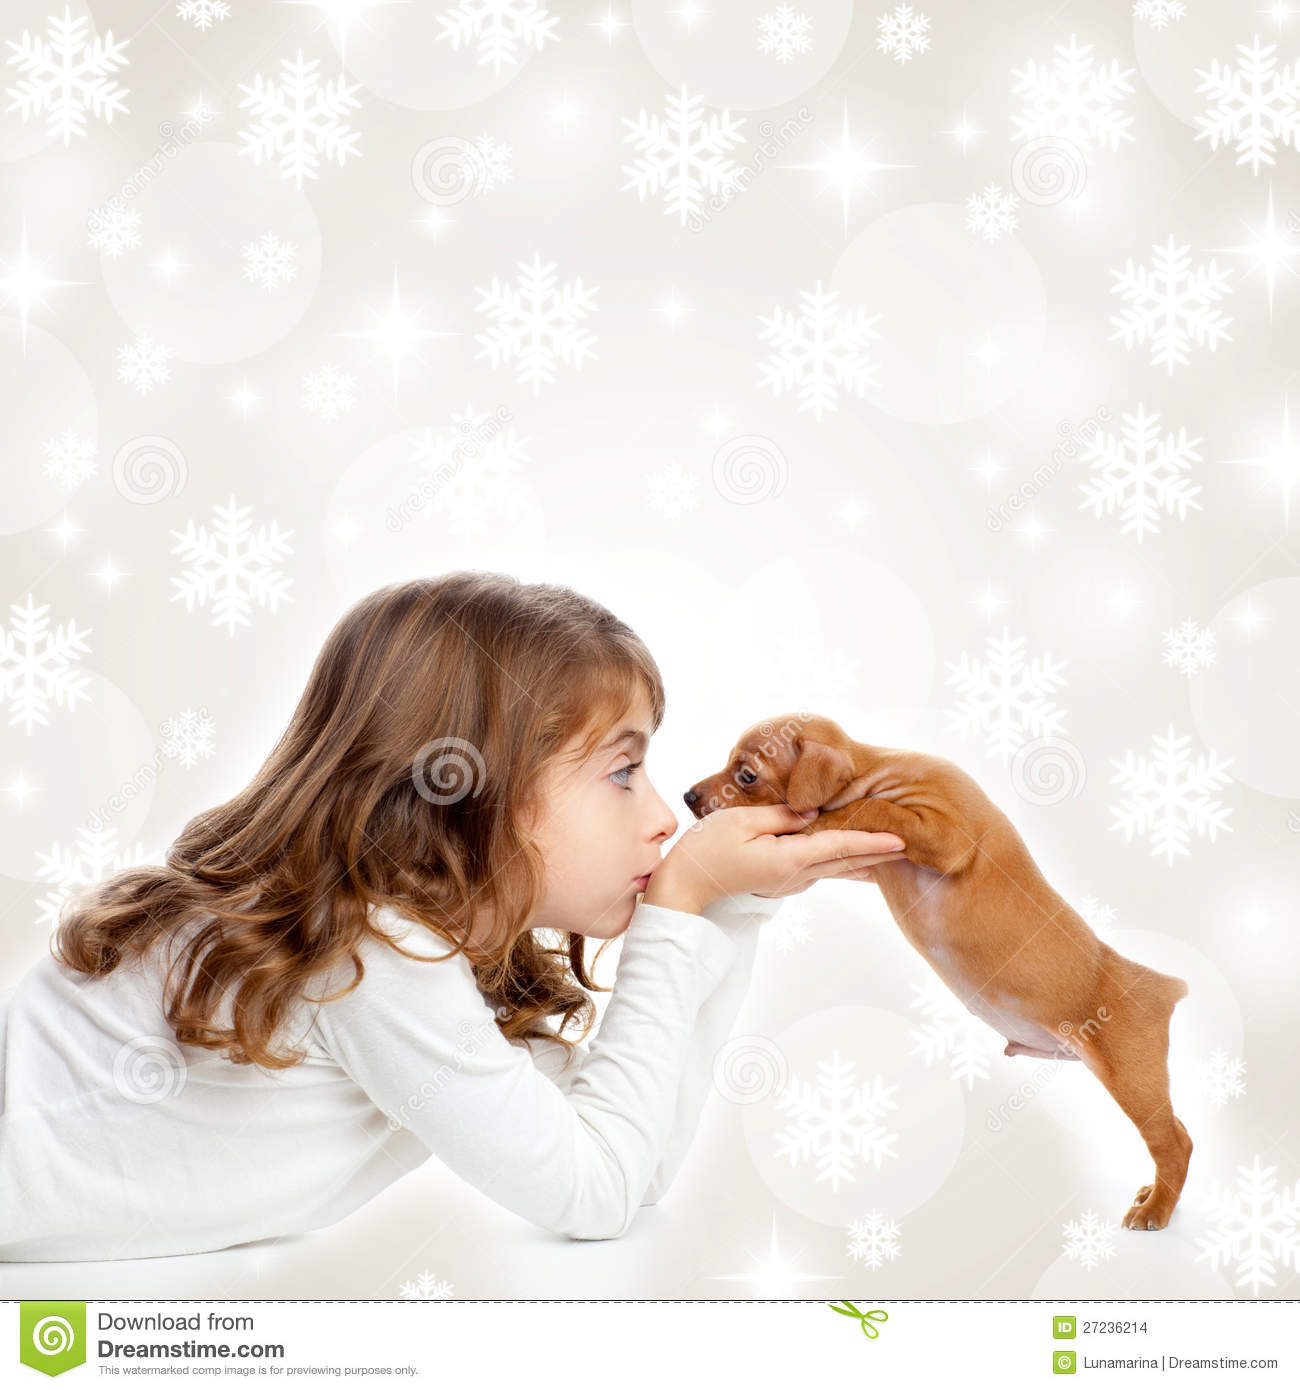 Christmas Children Girl Hug A Puppy Brown Dog Stock Images - Image ...